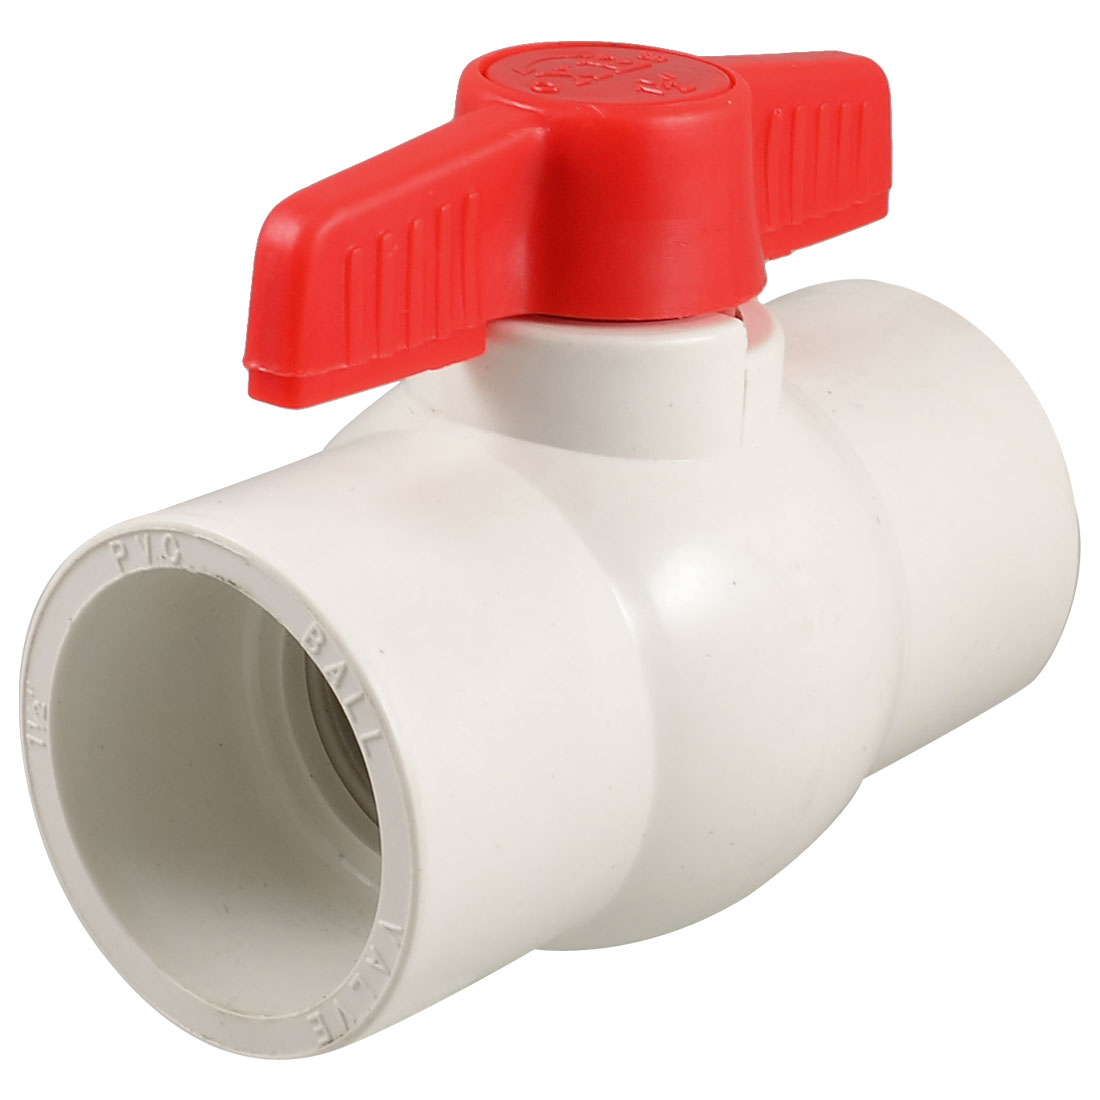 "1.97"" x 1.97"" Slip Ends Two Way Ports PVC Ball Valve White Red"